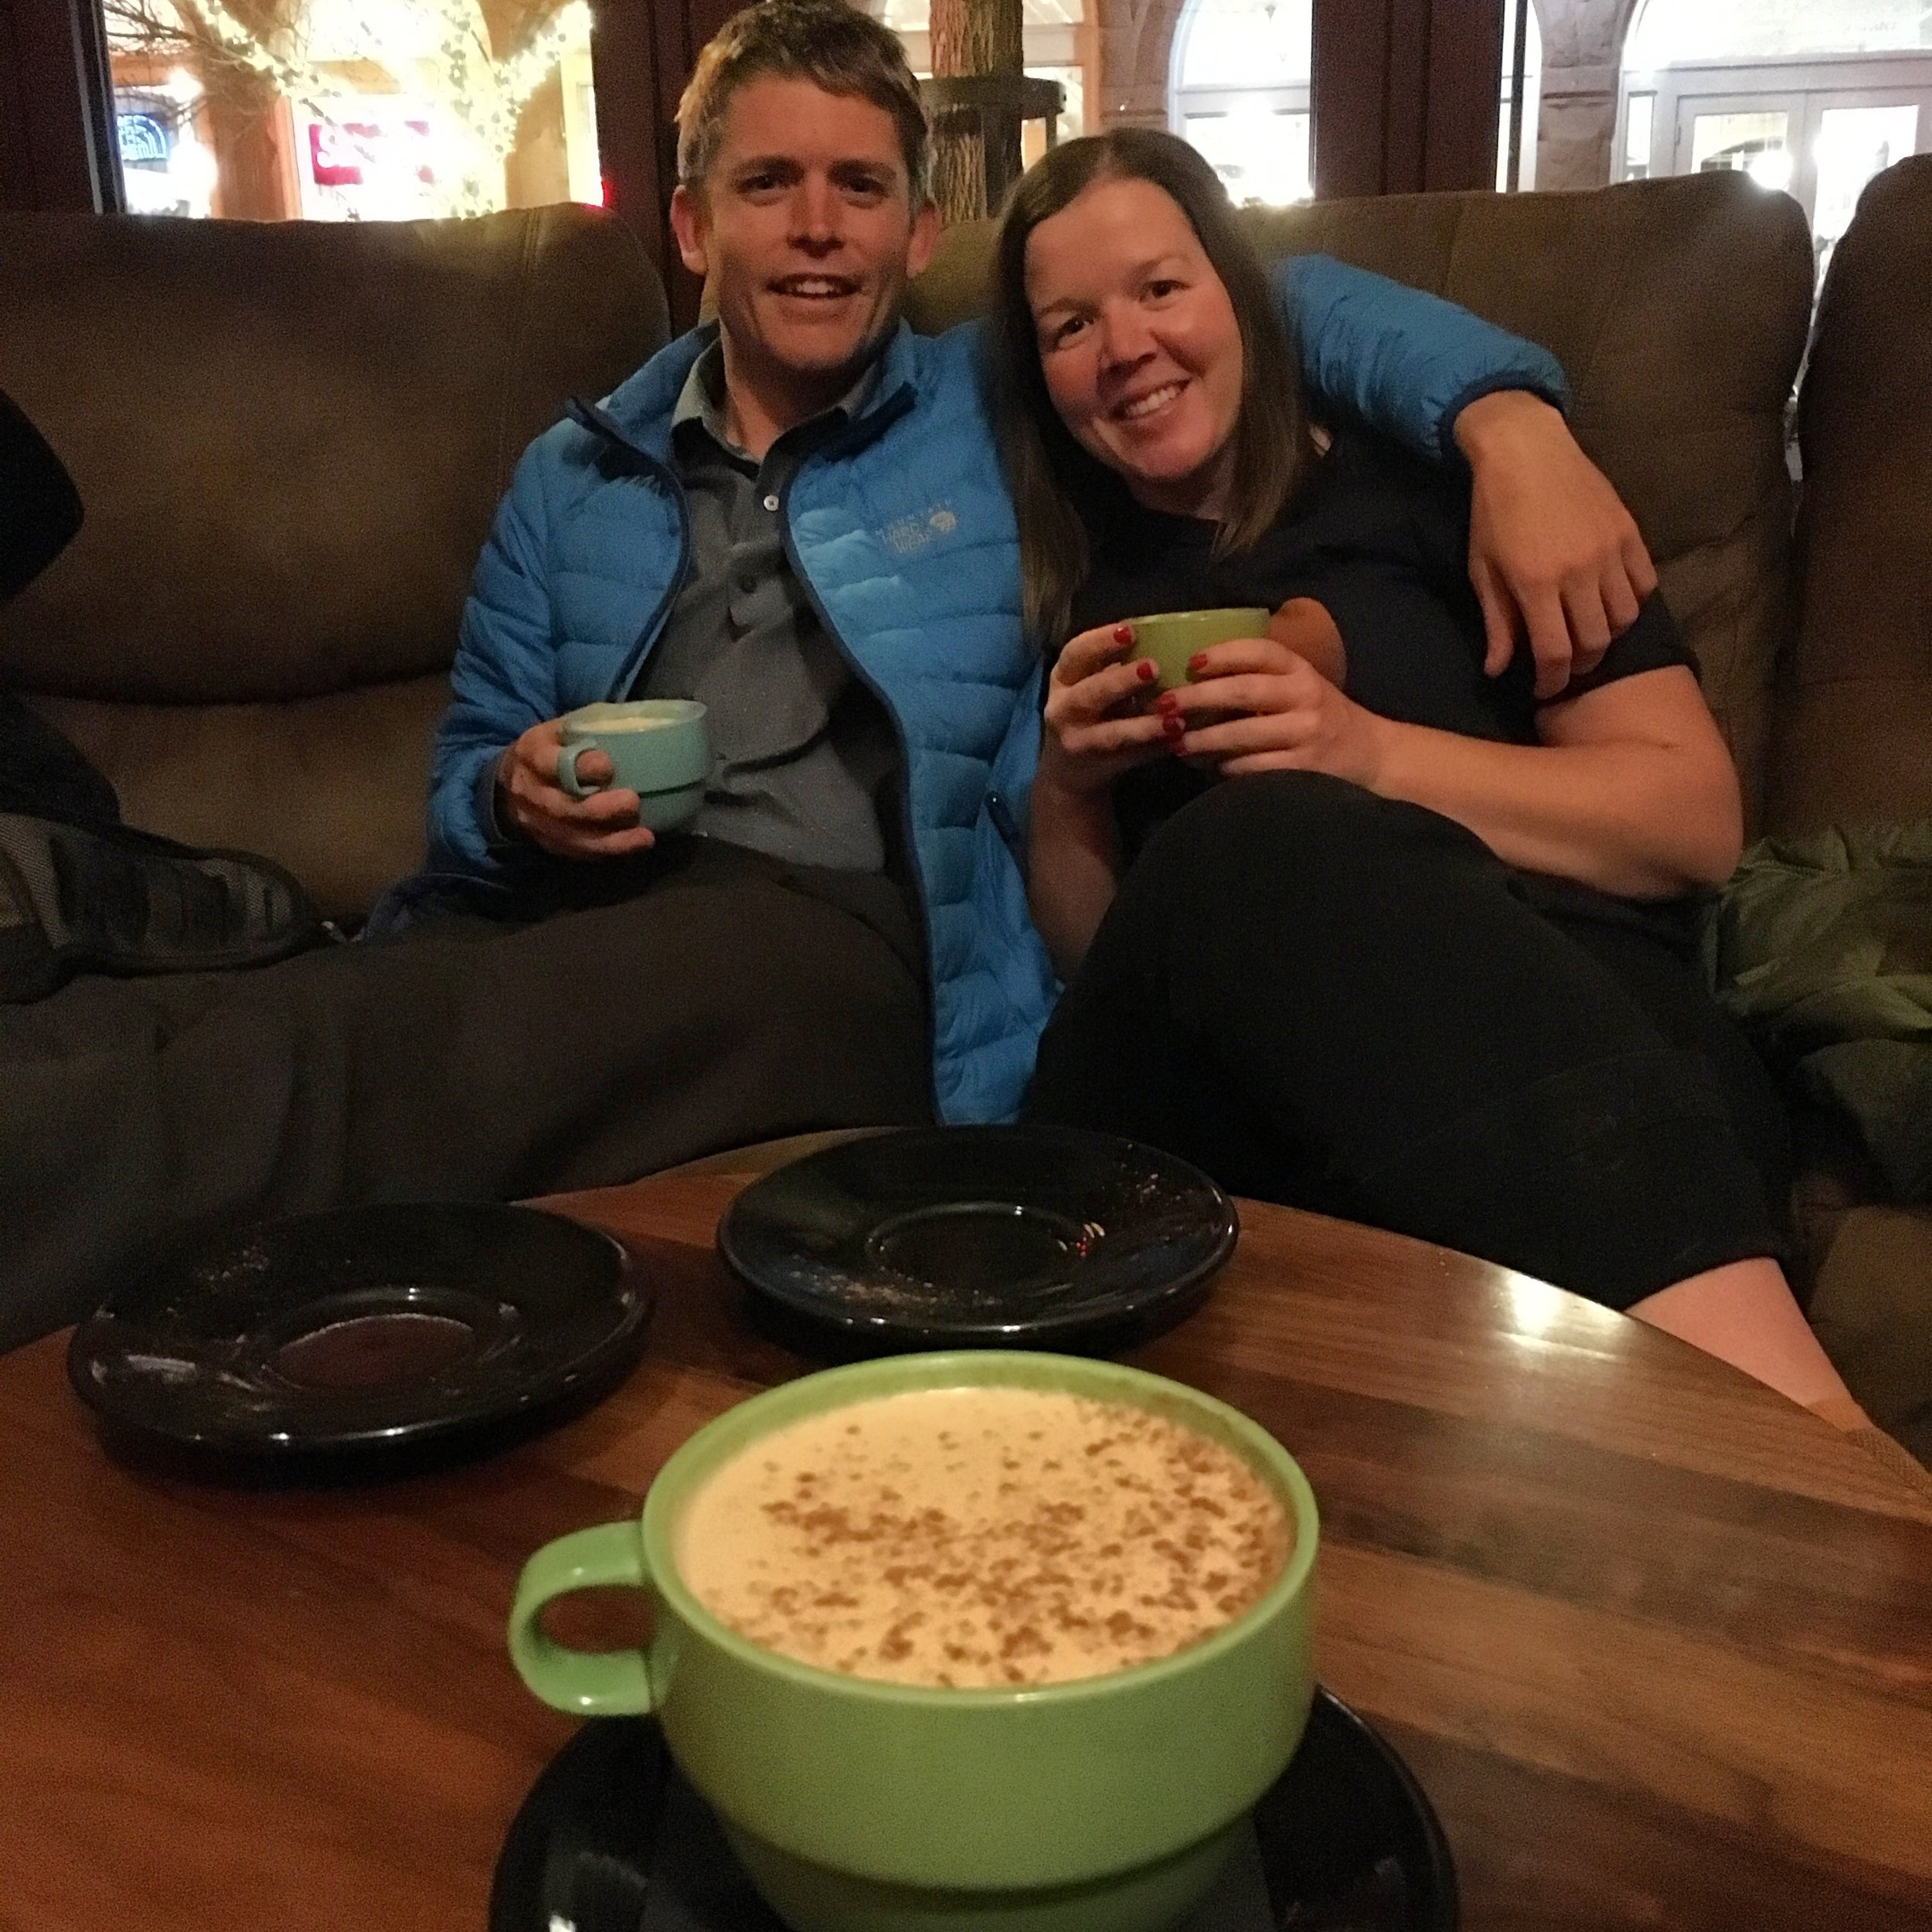 My wonderful hosts + whisky chai